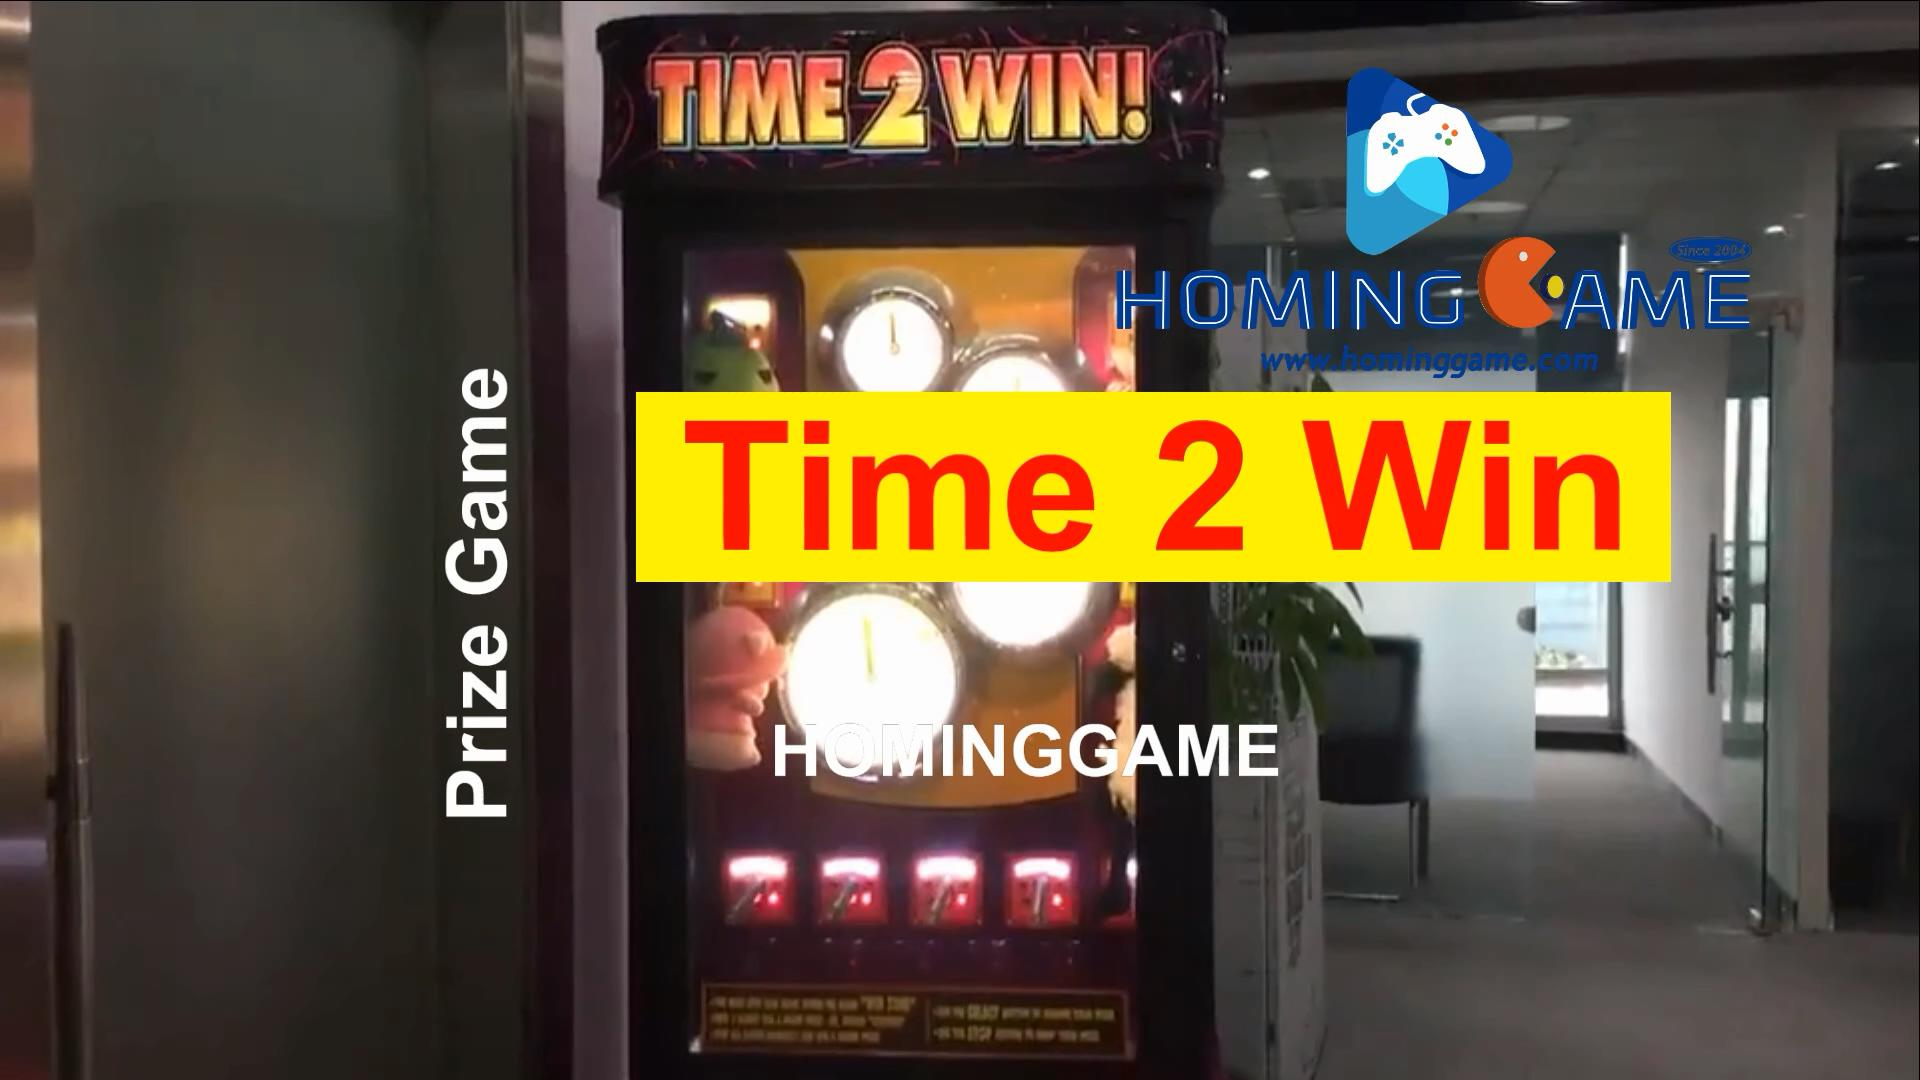 time 2 win,Time 2 win prize game machine,time 2 win gift pirze game machine,time 2 win gift prize redemption game machine,prize redemption game machine,prize skill game machine,skill prize game machine,game machine,arcade game machine,coin operated game machine,indoor game machine,electrical game machine,amusement park game equipment,game equipment,hominggame,www.gametube.hk,entertainmanet game machine,family entertainment game machine,hominggame prize game machine,prize arcade game machine,coin operated prize game machine,skill game machine,skill game,games,arcade games,indoor games,key master game machine,winner cube prize game machine,cut the rope prize game machine,key point push prize game machine,key push prize game machine,cut string prize game machine,axe master prize game machine,claw machine,crane machine,catch plush prize game machine,magic arrow prize game machine